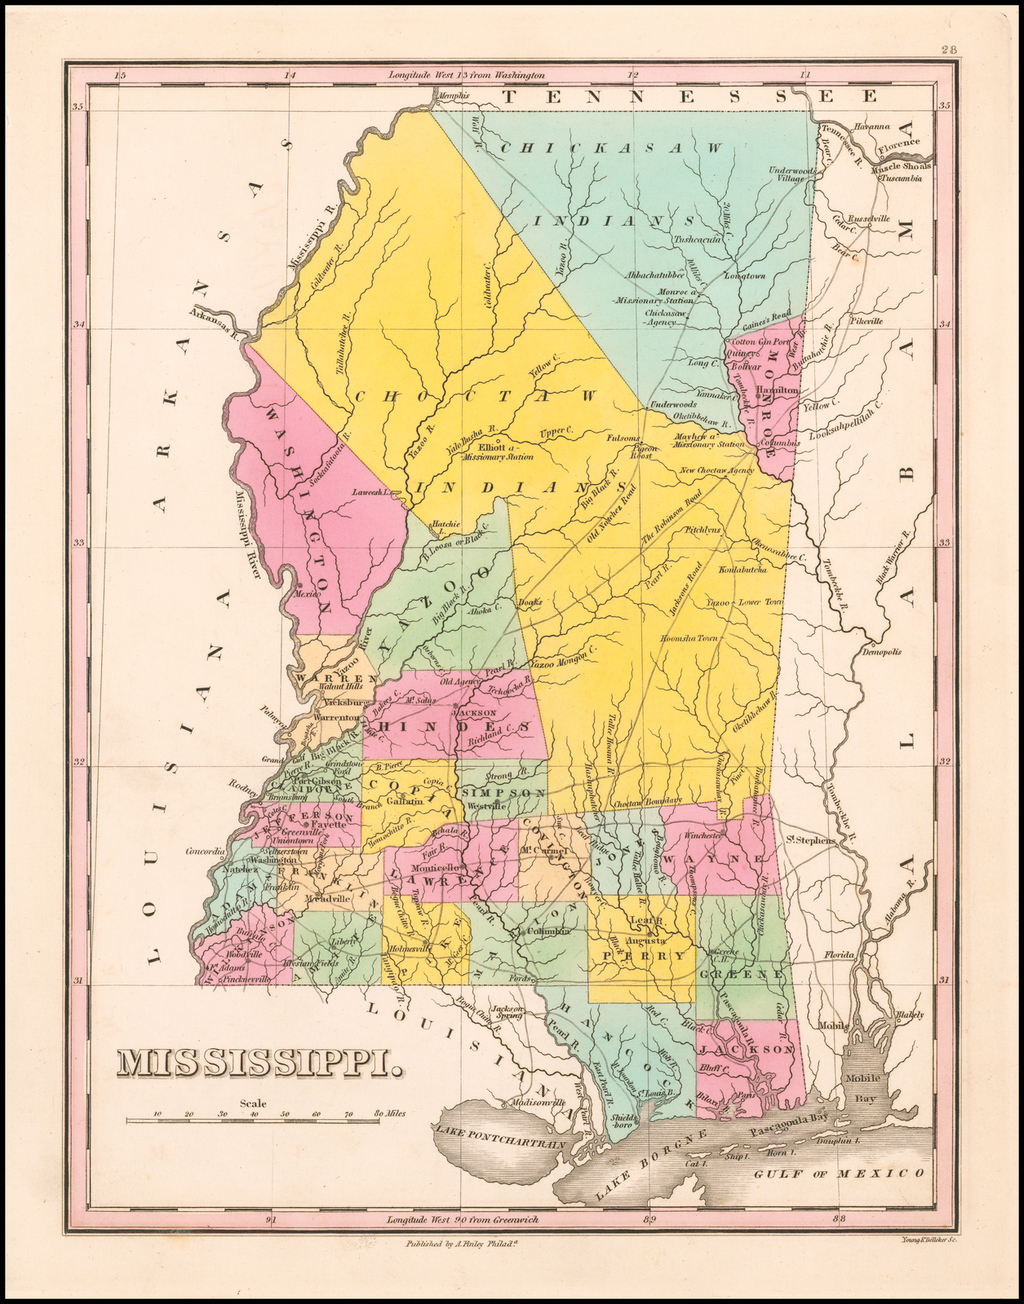 Mississippi By Anthony Finley